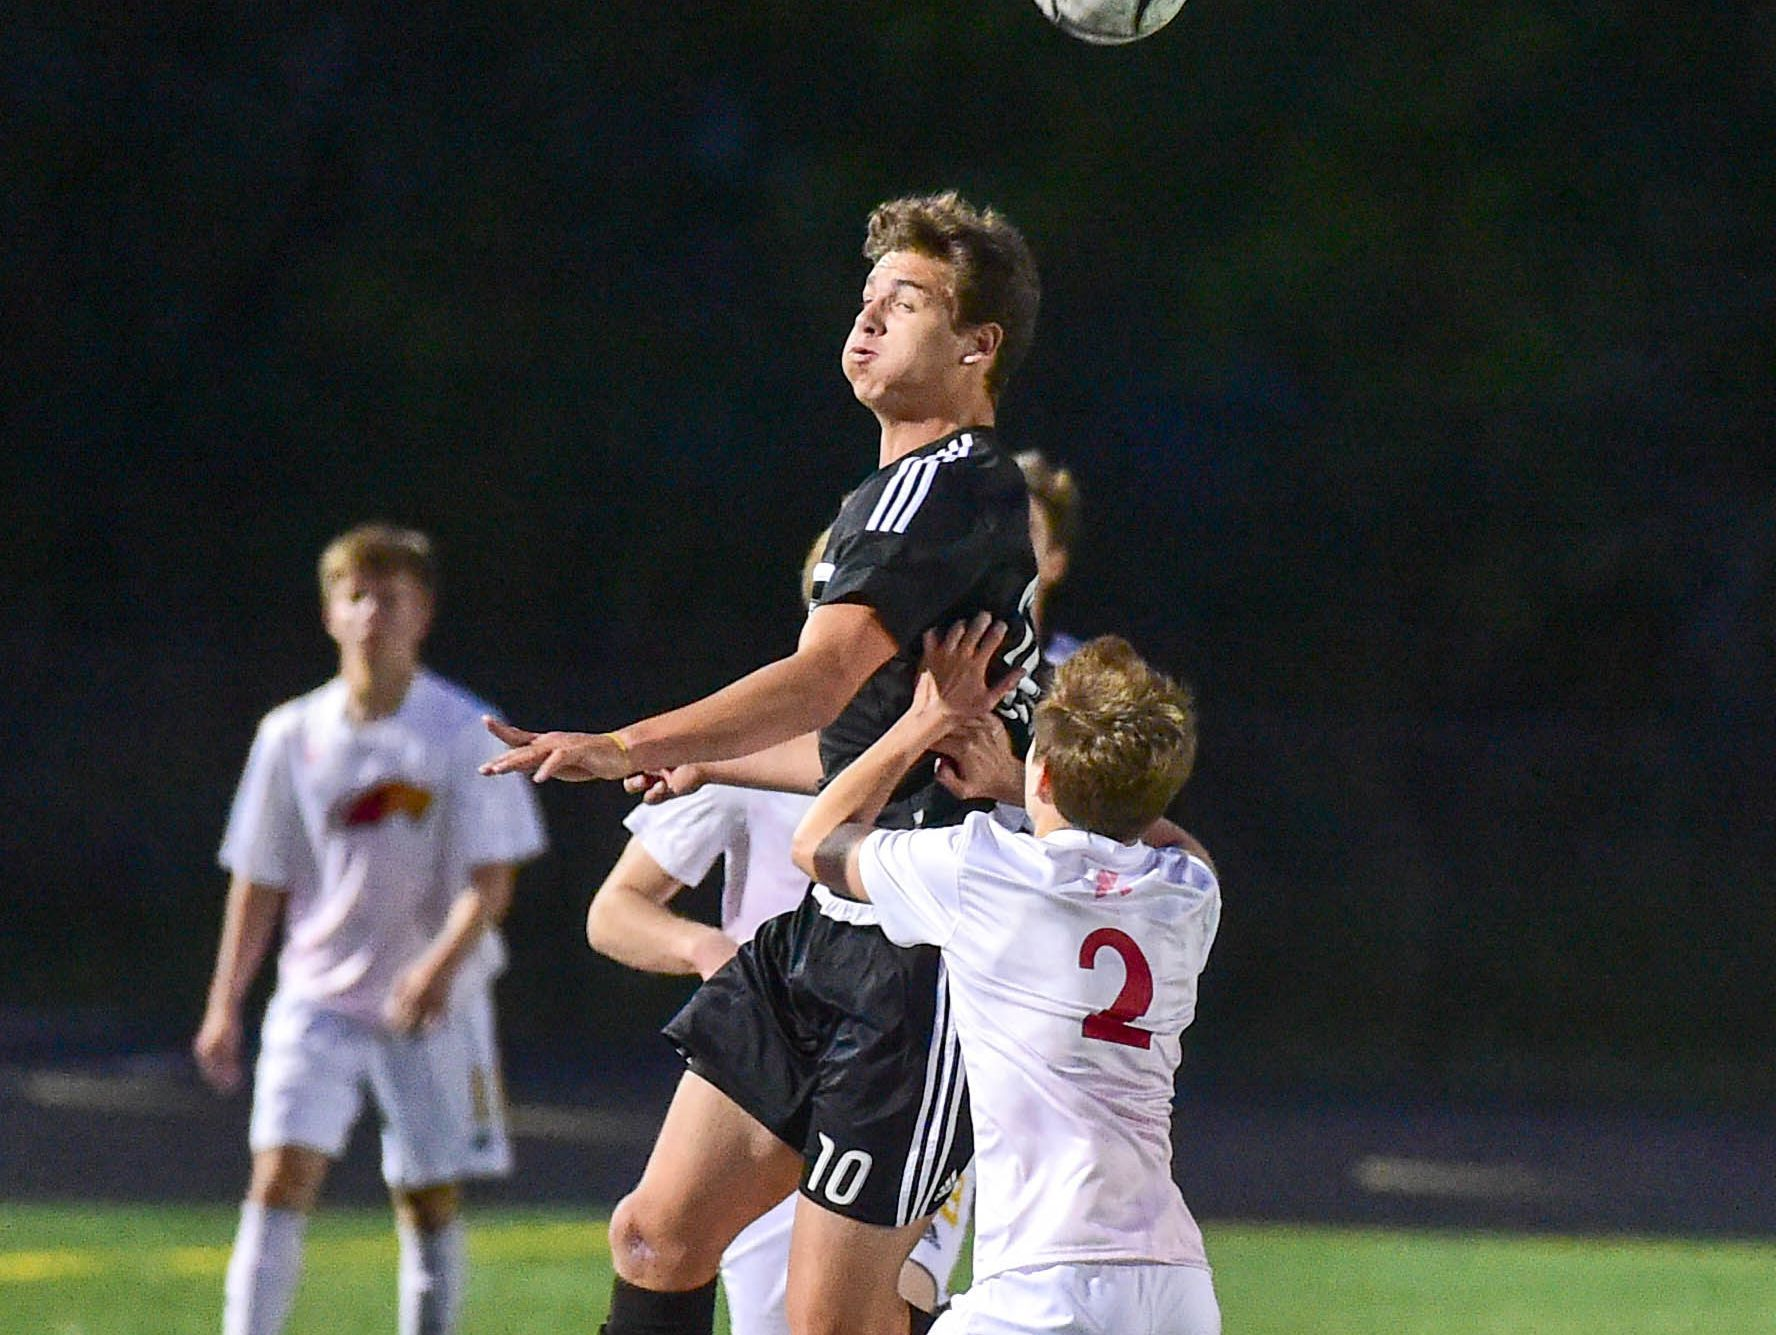 Ankeny Centennial's Jake Pinegar (10) heads the ball as Ankeny's Jack Nurre (2) defends on Thursday, May 5, 2016, during the Ankeny and Ankeny Centennial Soccer Doubleheader to Kick Out Cancer.The games and funds raised through t-shirt sales and PK (penalty kick) shootout ticket sales will support local Ankeny organization Cops Against Cancer.